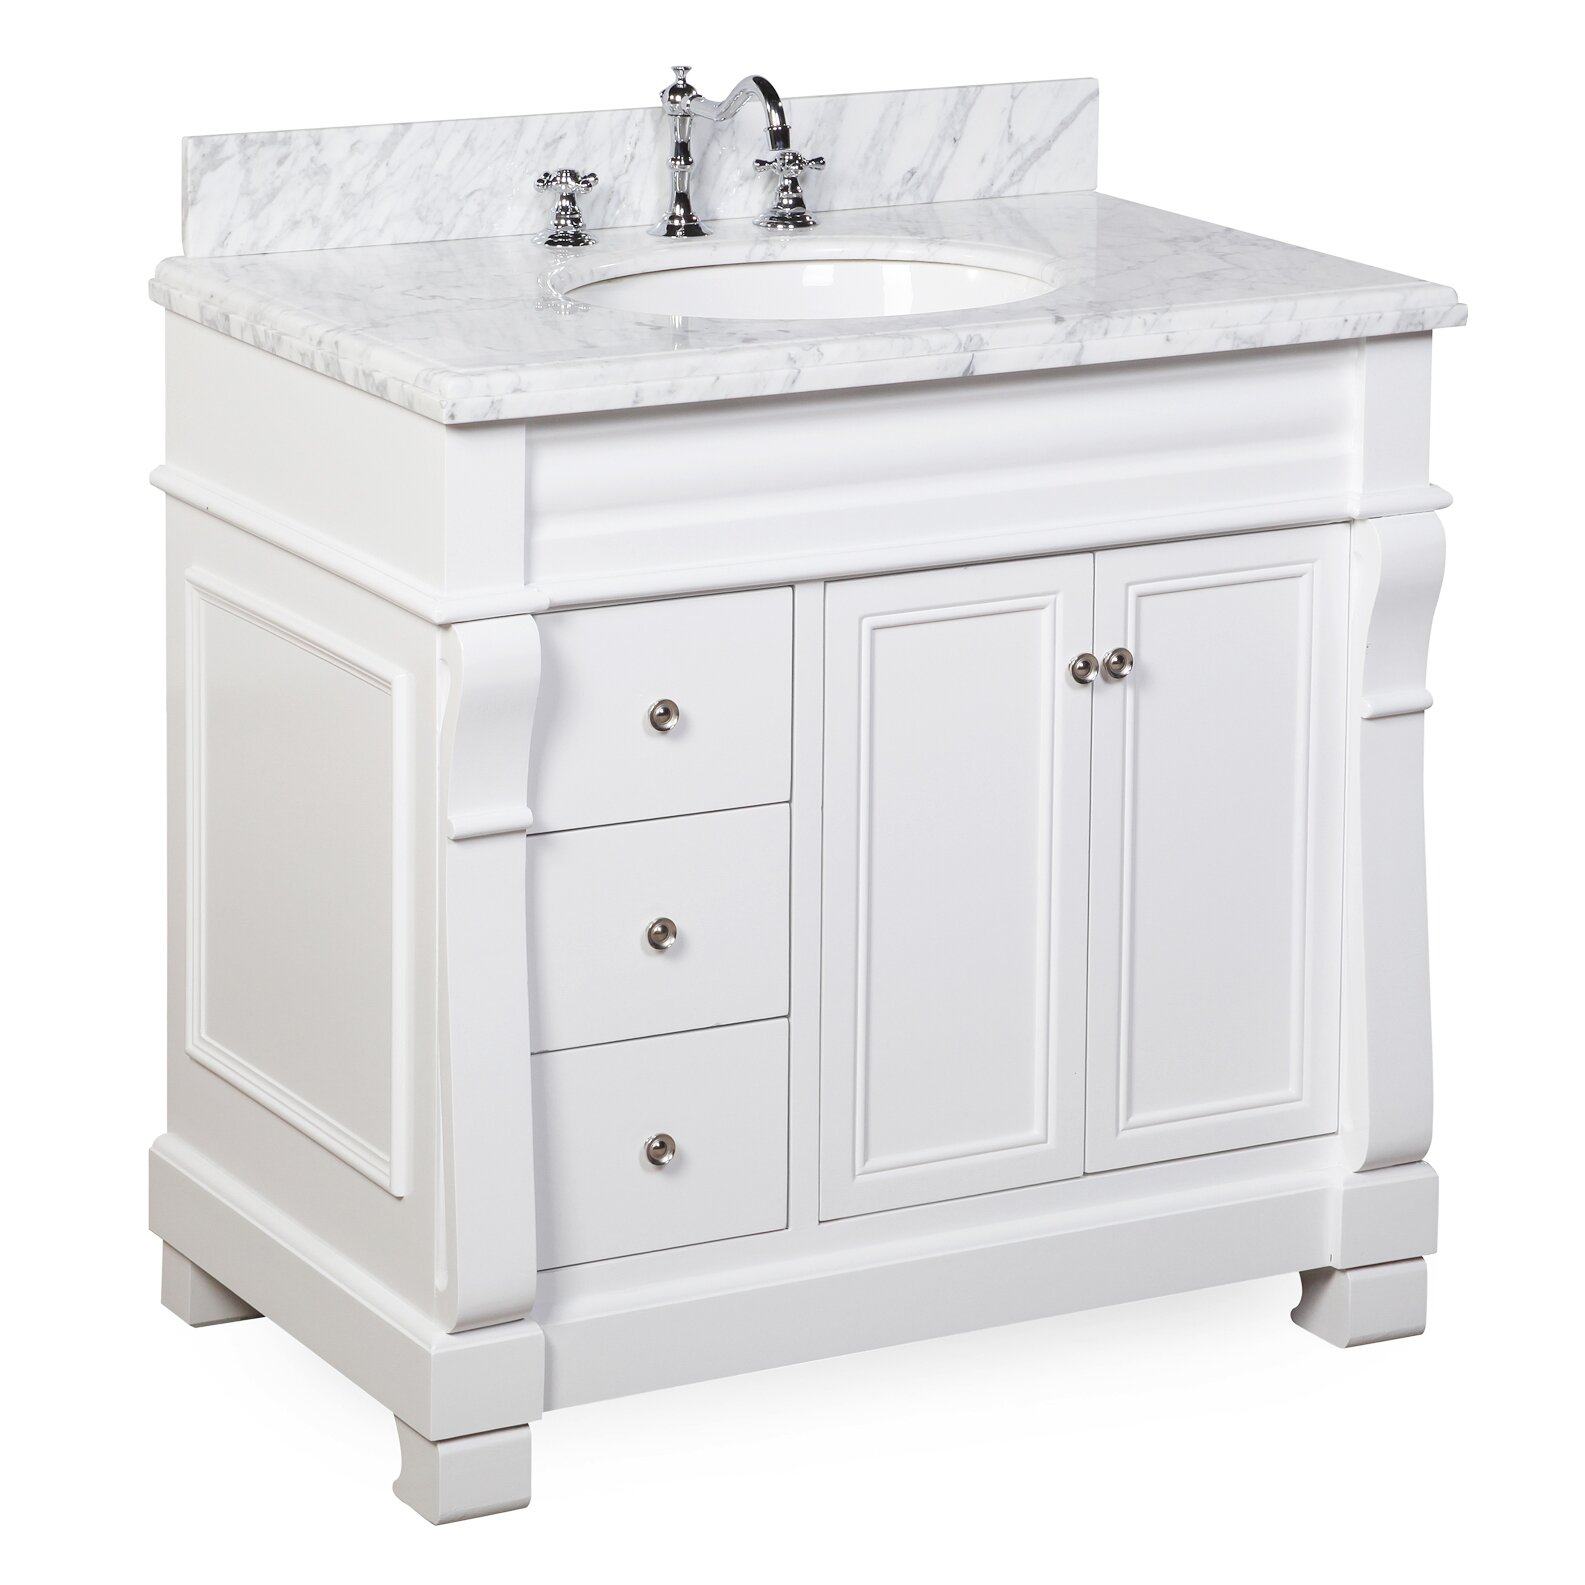 Kbc westminster 36 single bathroom vanity set reviews for Single bathroom vanity